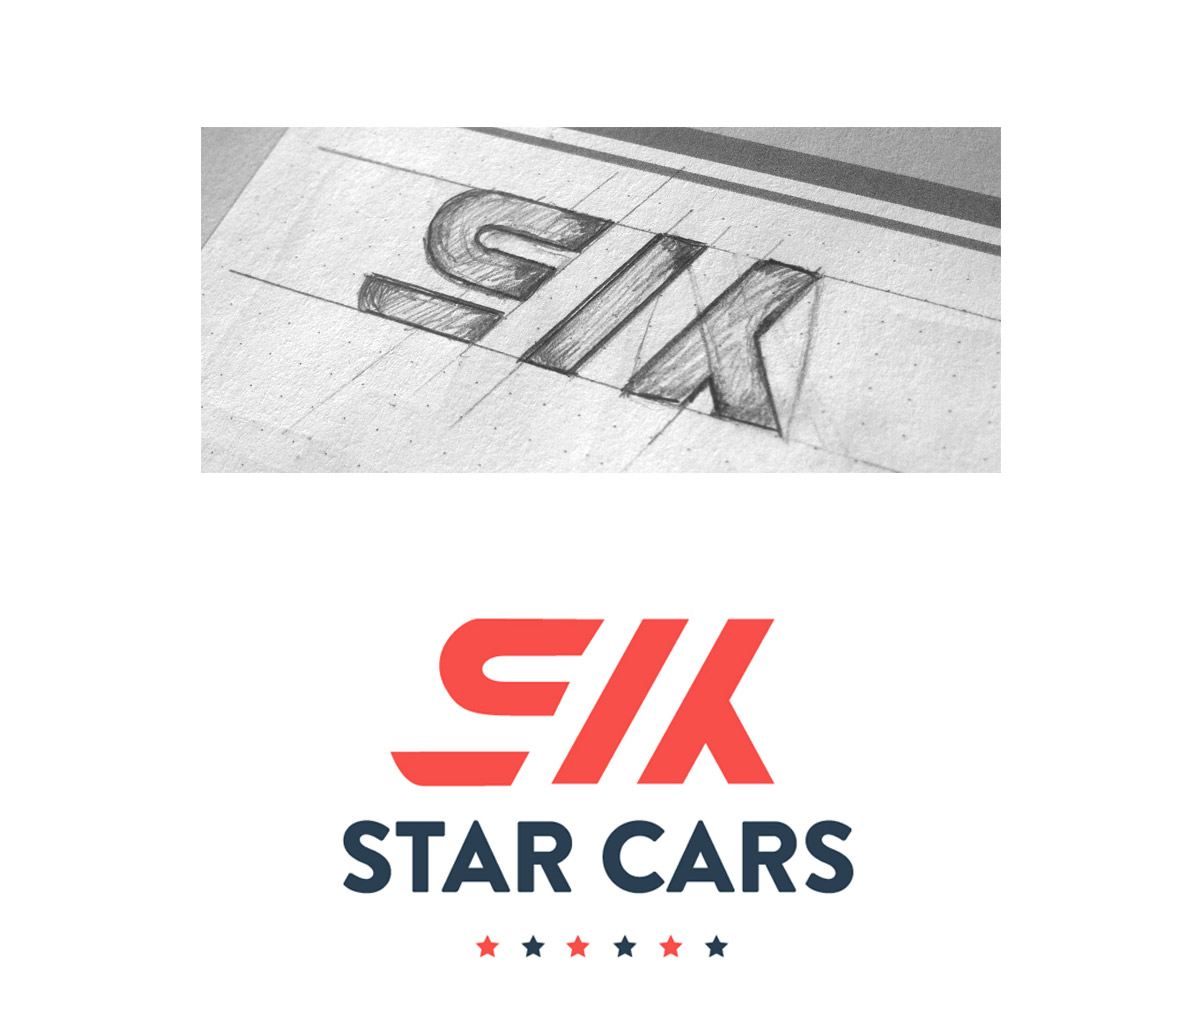 Six Star Cars